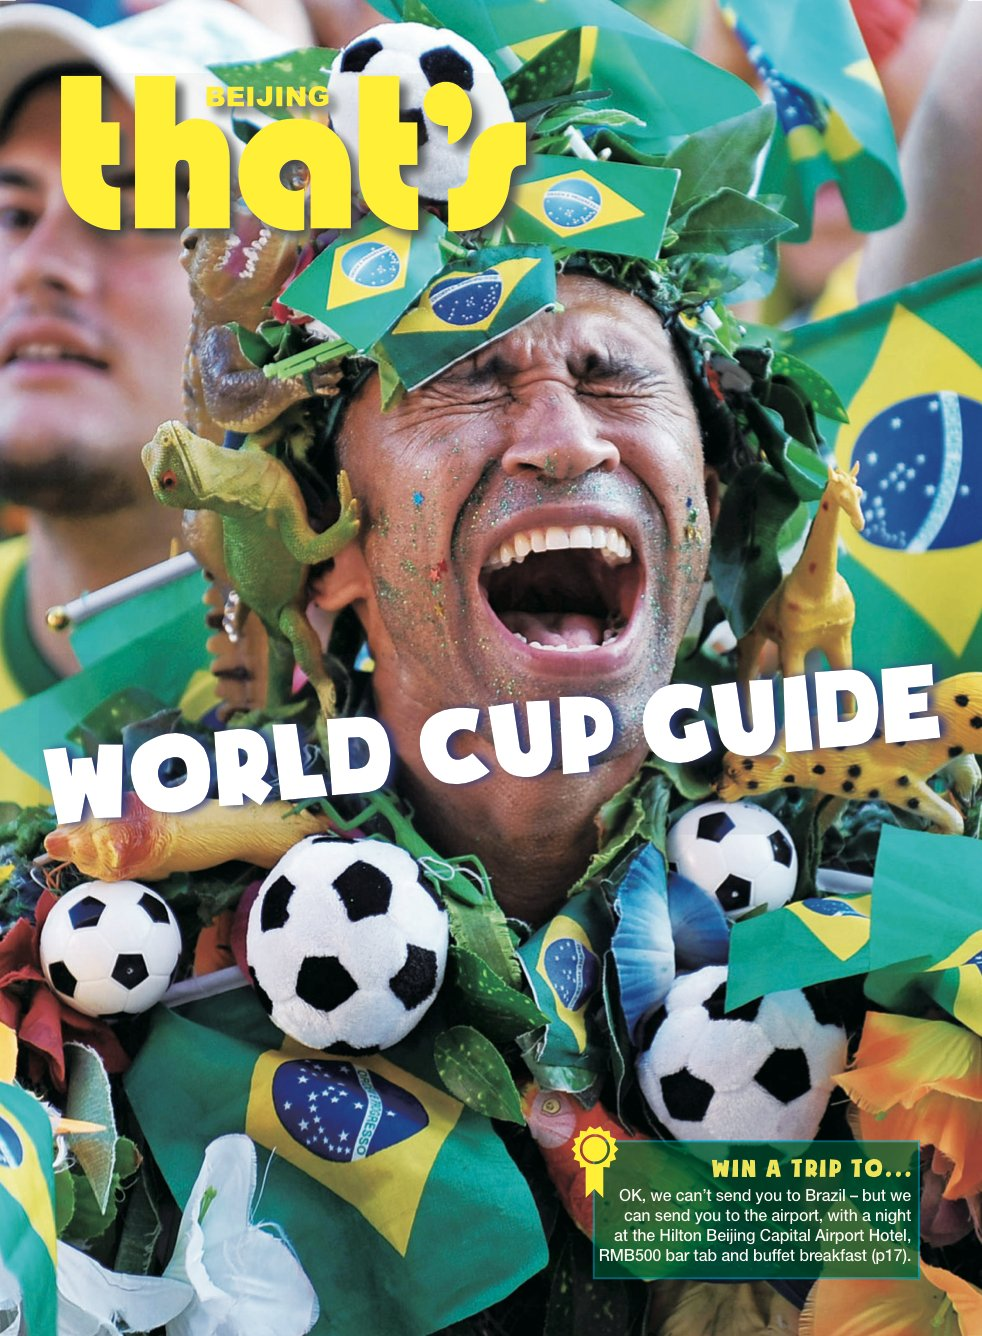 That's Beijing's very own World Cup Guide now available for download